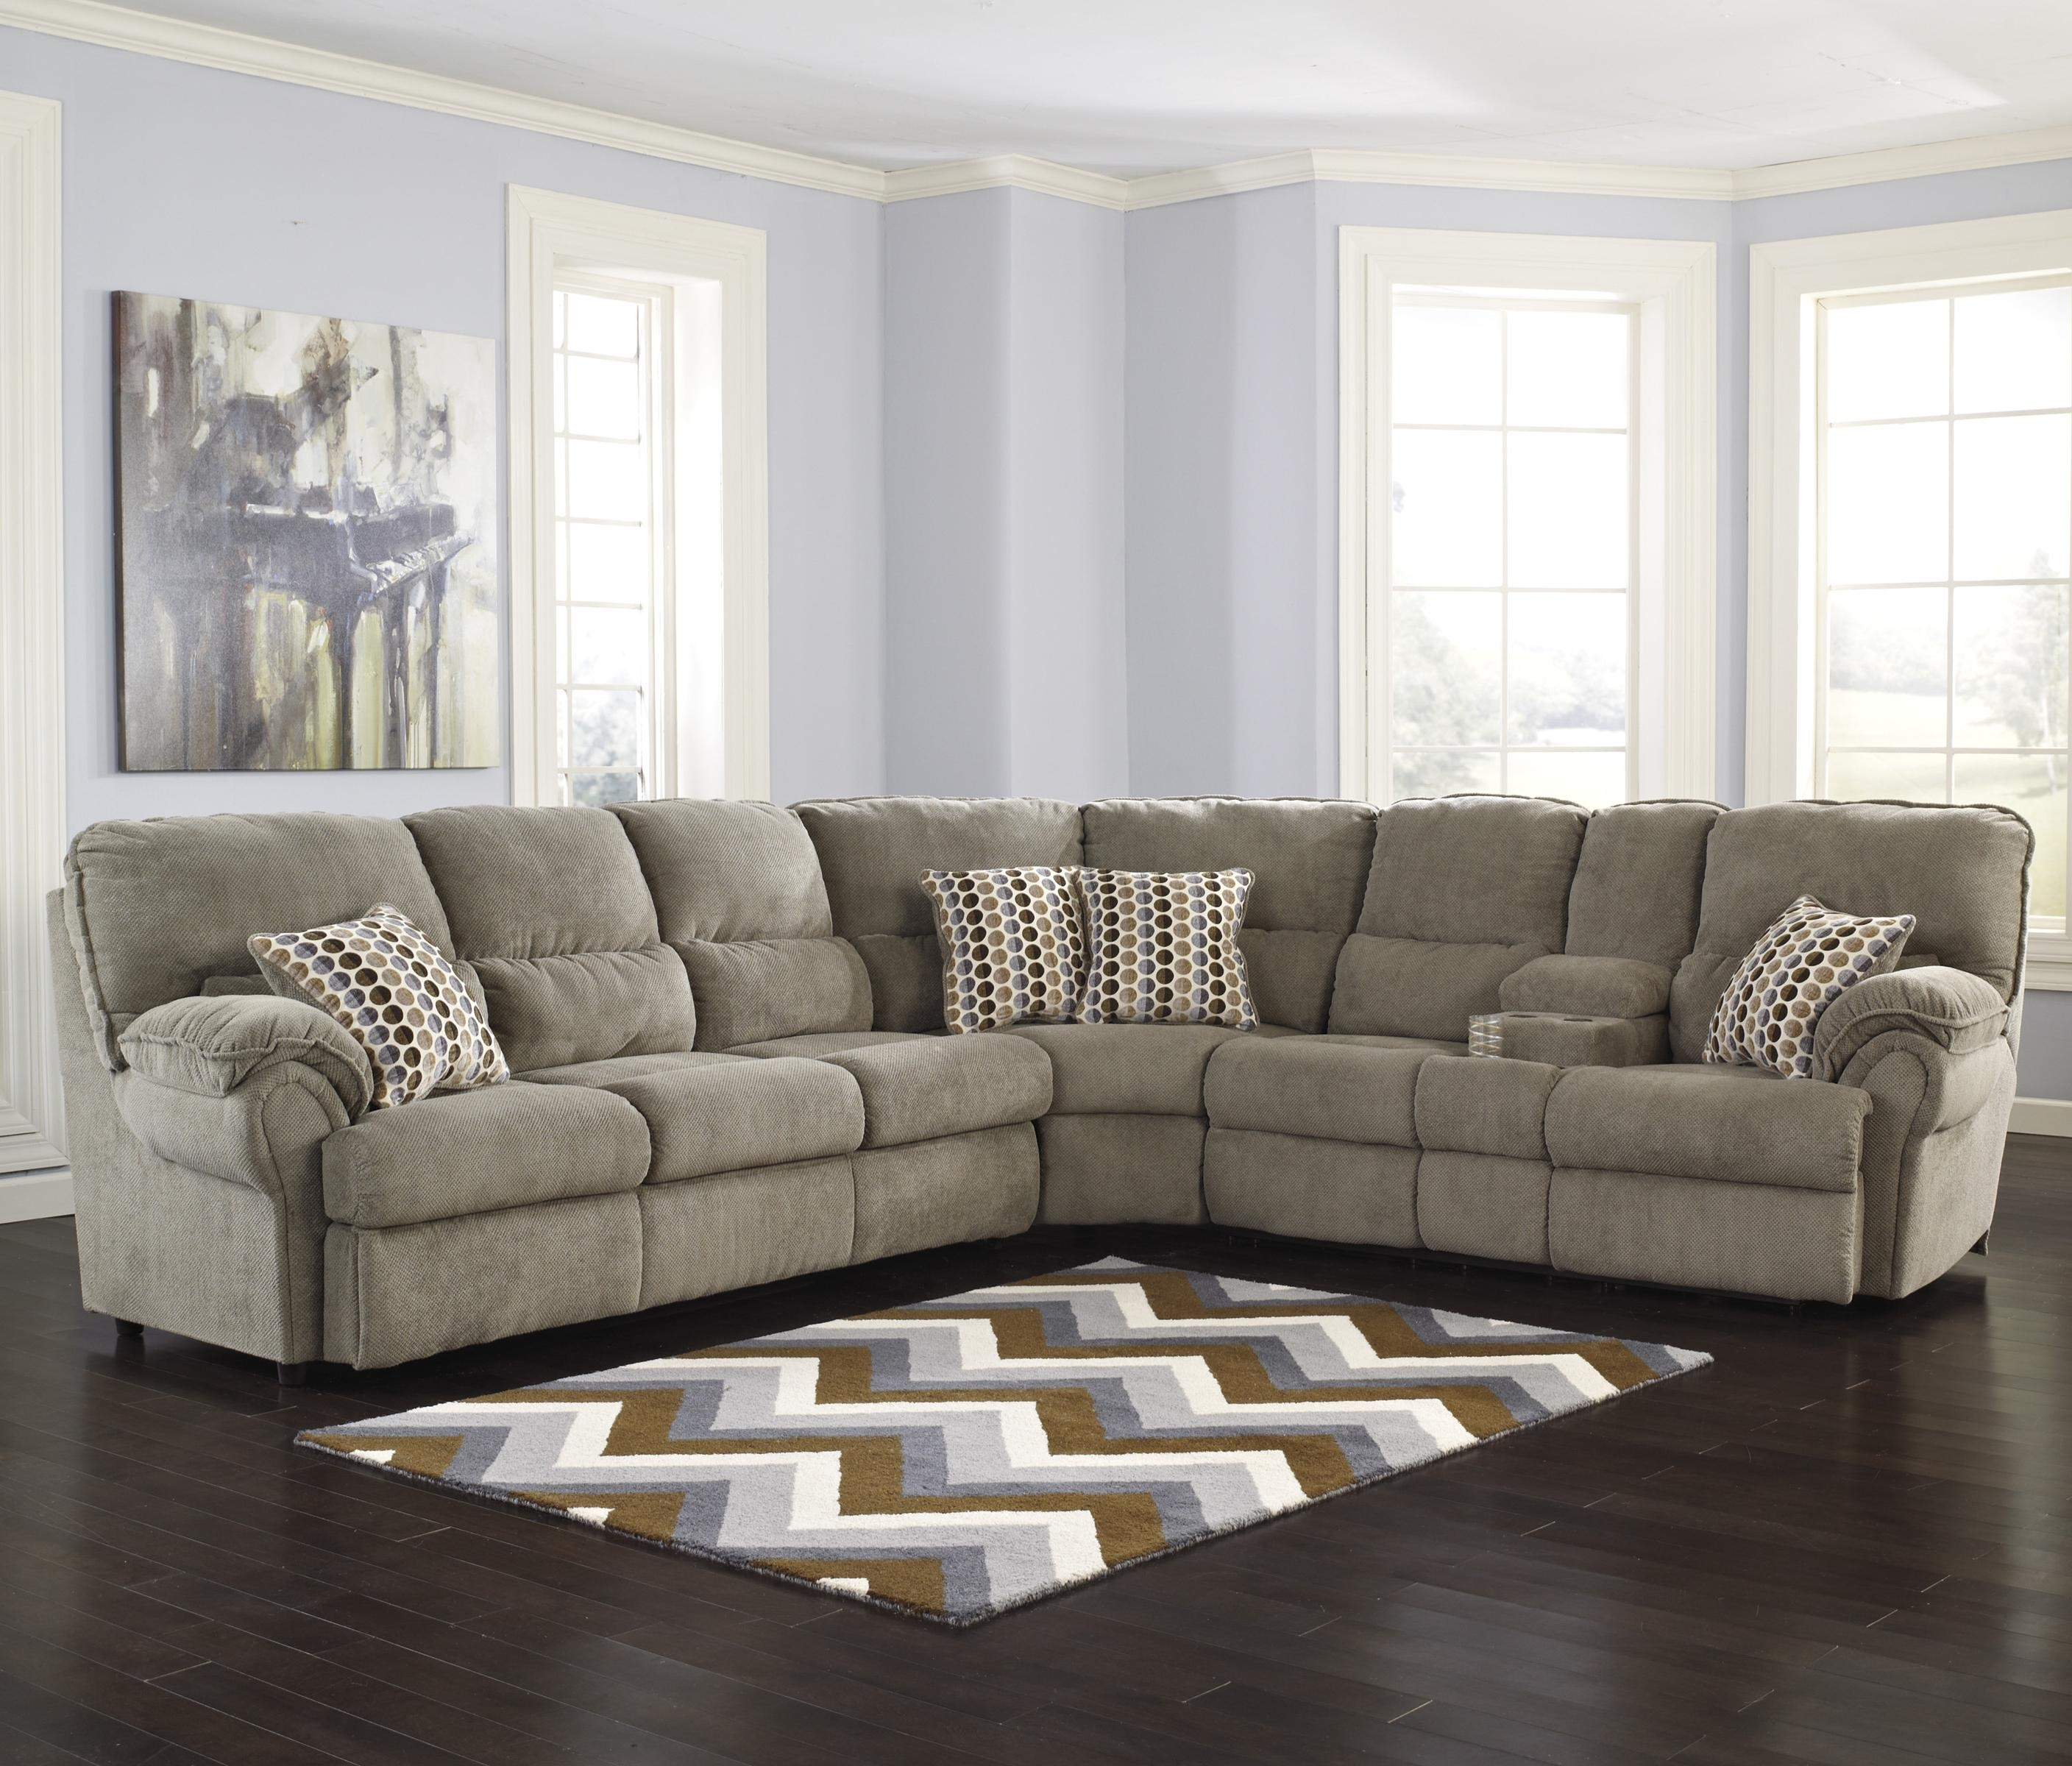 2018 Sectional Sofas Ashley Furniture (34 Photos) | Clubanfi pertaining to Sectional Sofas At Ashley (Image 4 of 15)